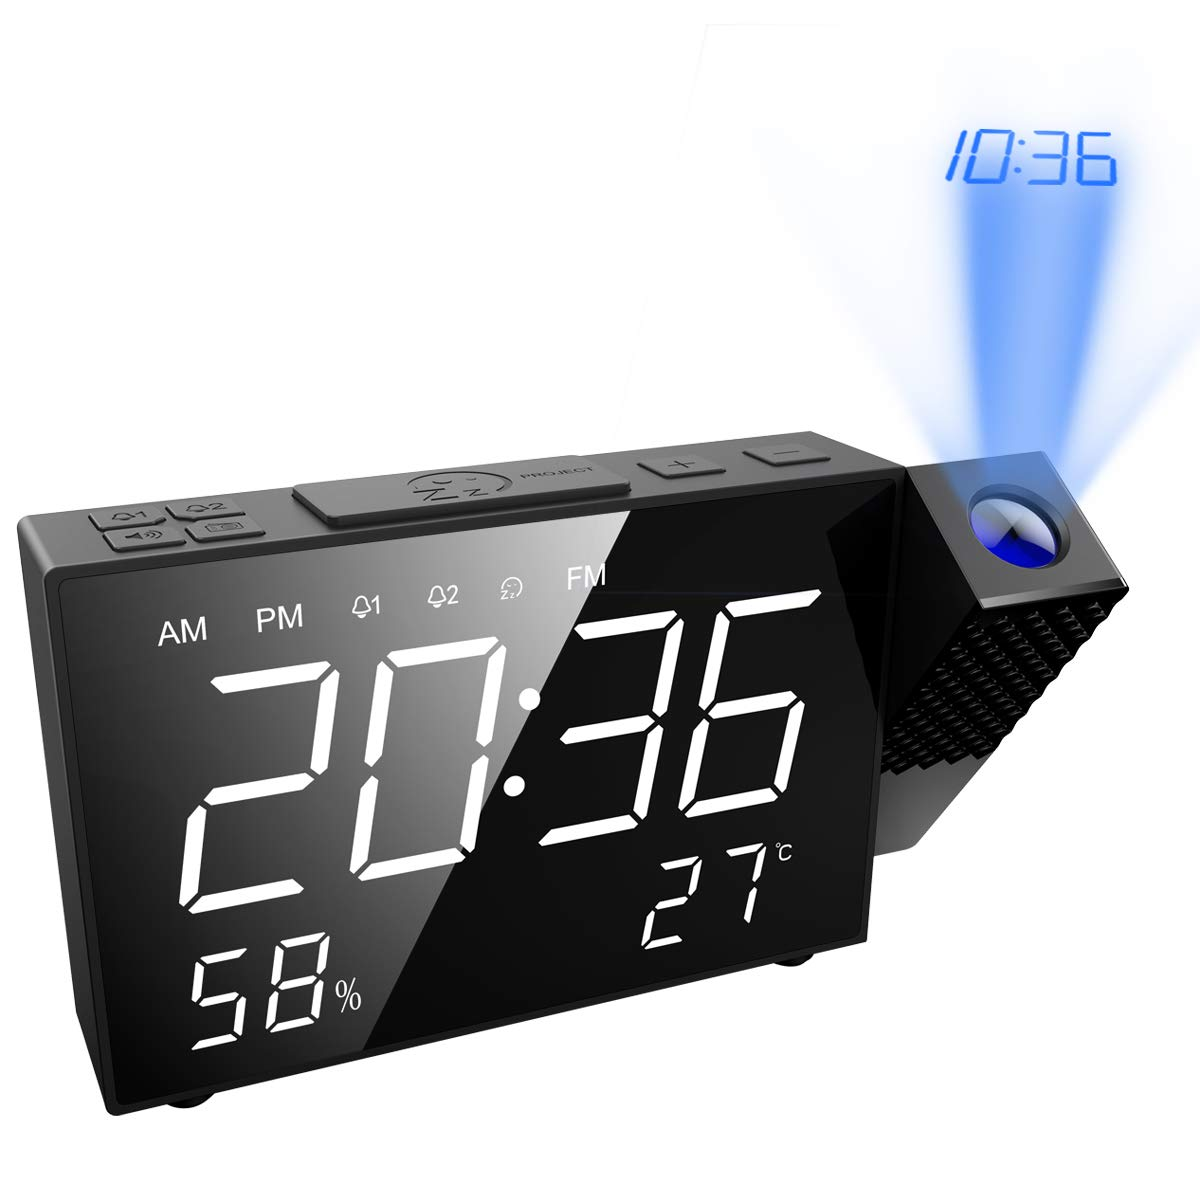 ORIA Projection Alarm Clock, Digital FM Radio Alarm Clock, 6.5'' Projection Clock, Dual Alarm with USB Charging Port, 12/24 Hour, Temperature and Humidity for Home, Kitchen, Bedroom, Study